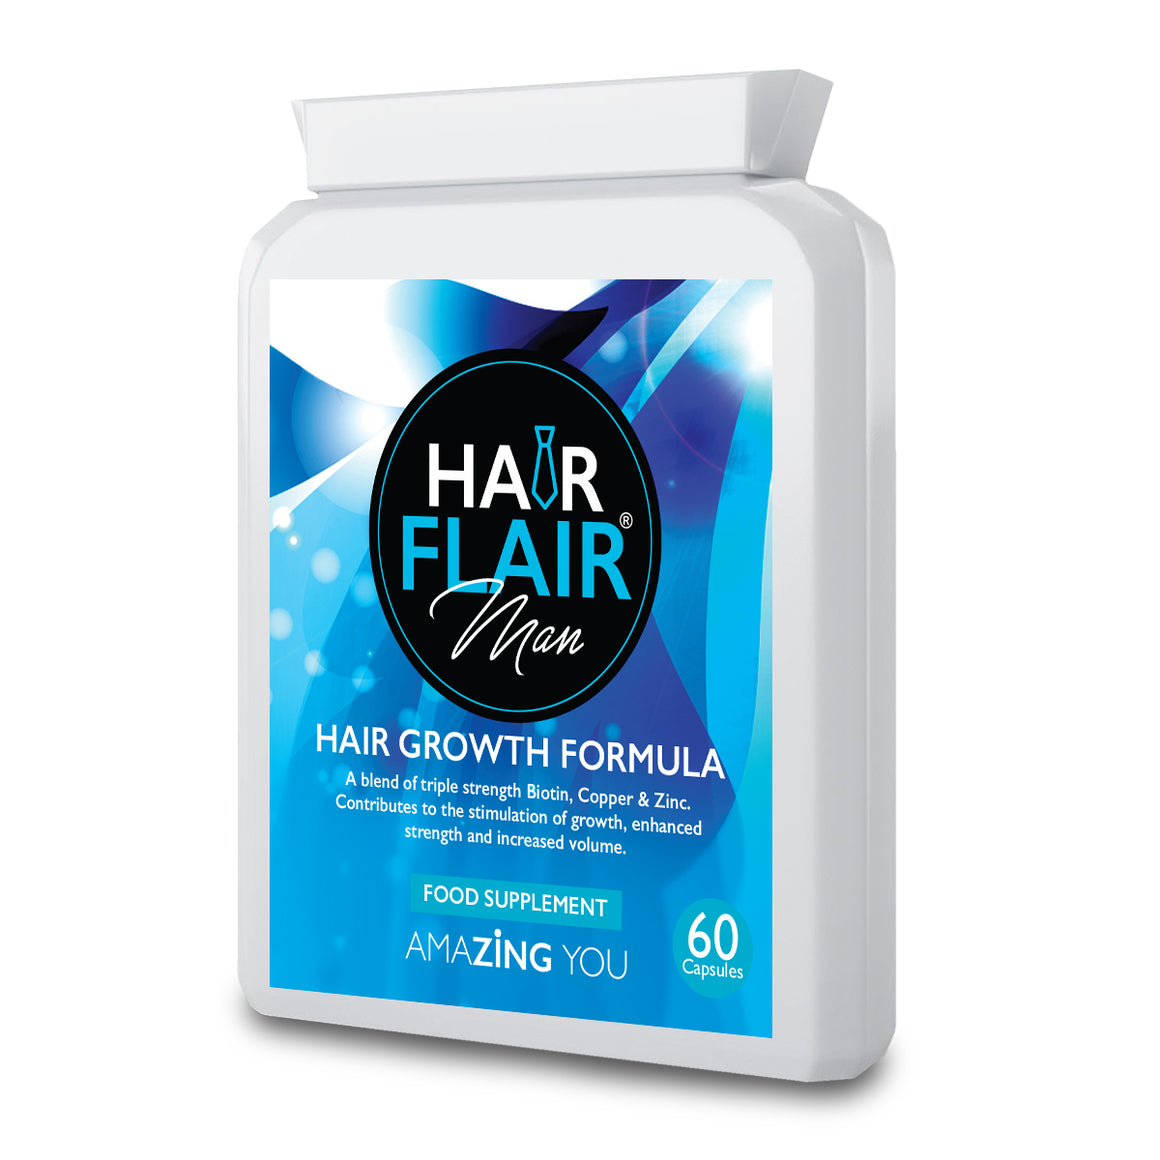 Hair Flair® Man